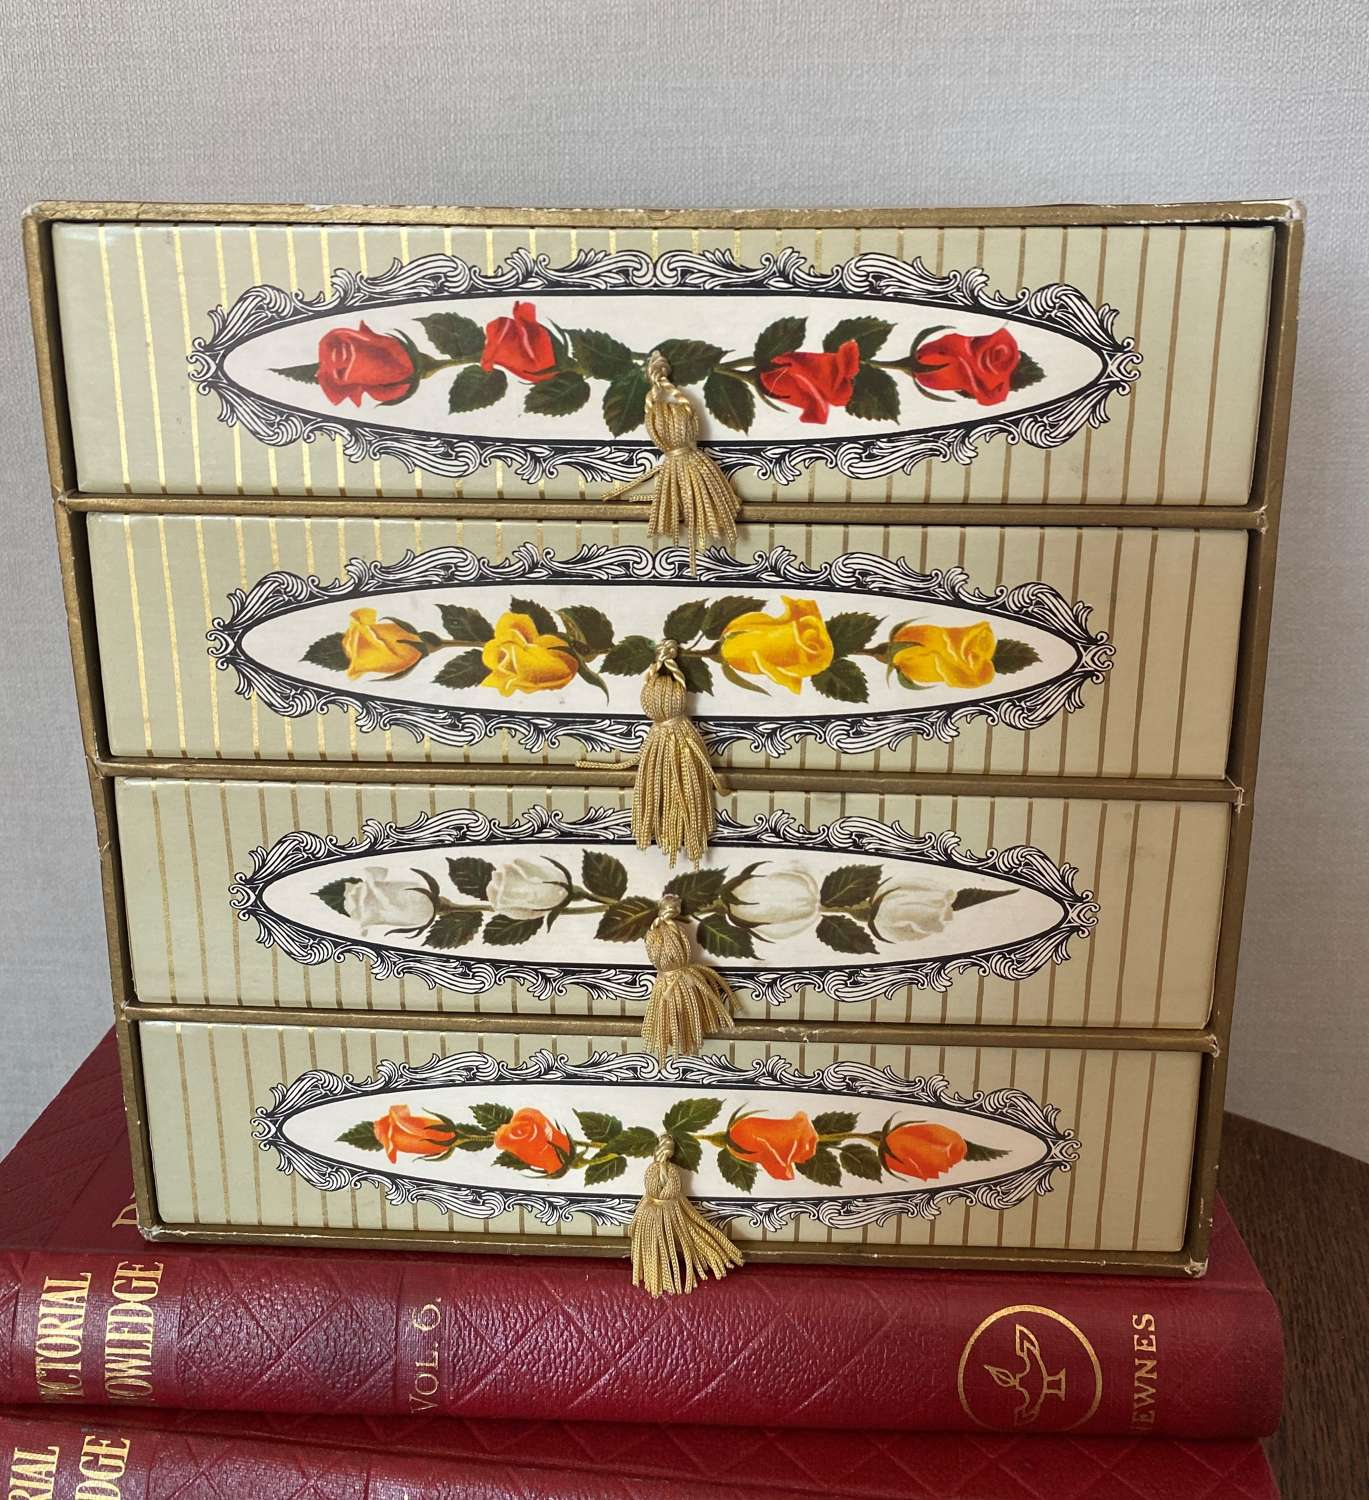 Vintage Terry's Chocolate Box Set Of Drawers